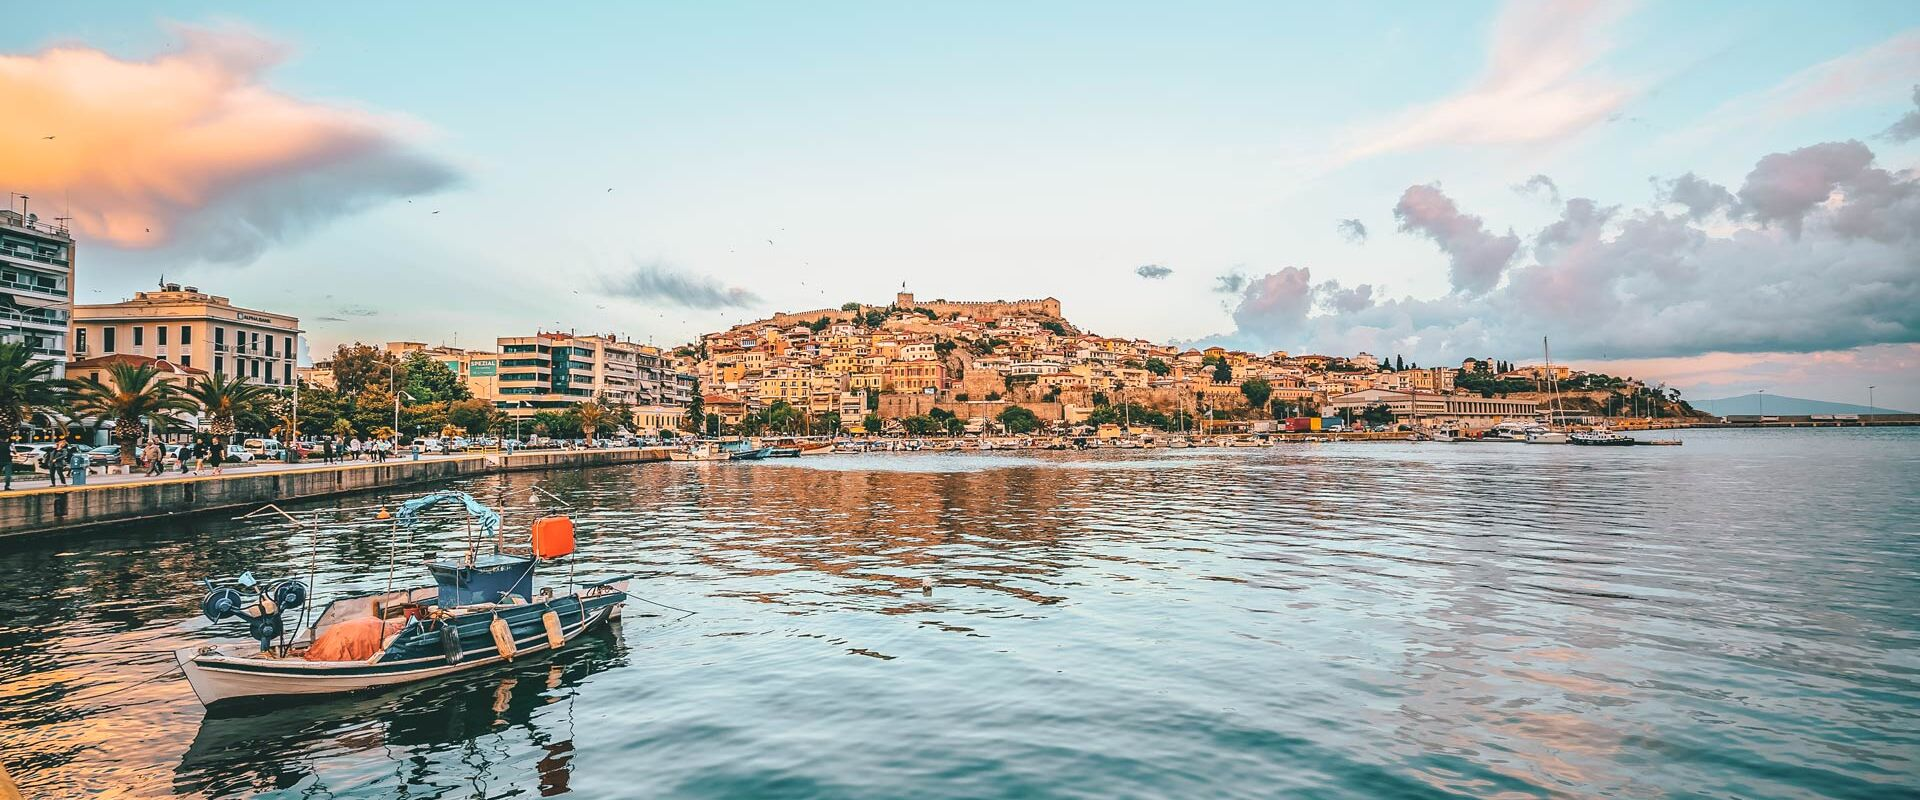 Kavala, a city escape by the sea